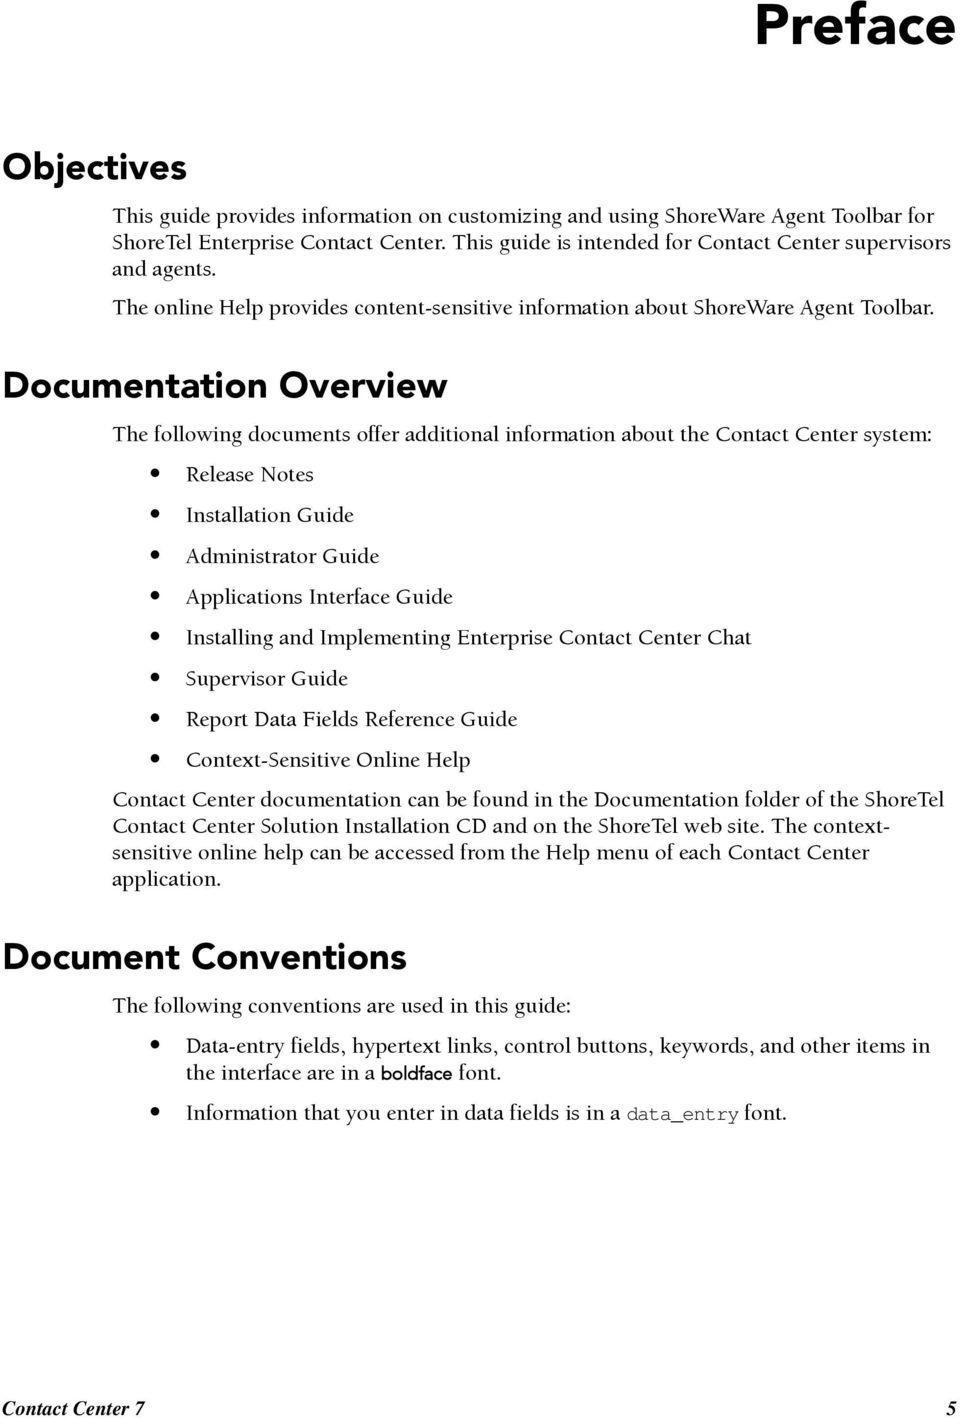 Documentation Overview The following documents offer additional information about the Contact Center system: Release Notes Installation Guide Administrator Guide Applications Interface Guide